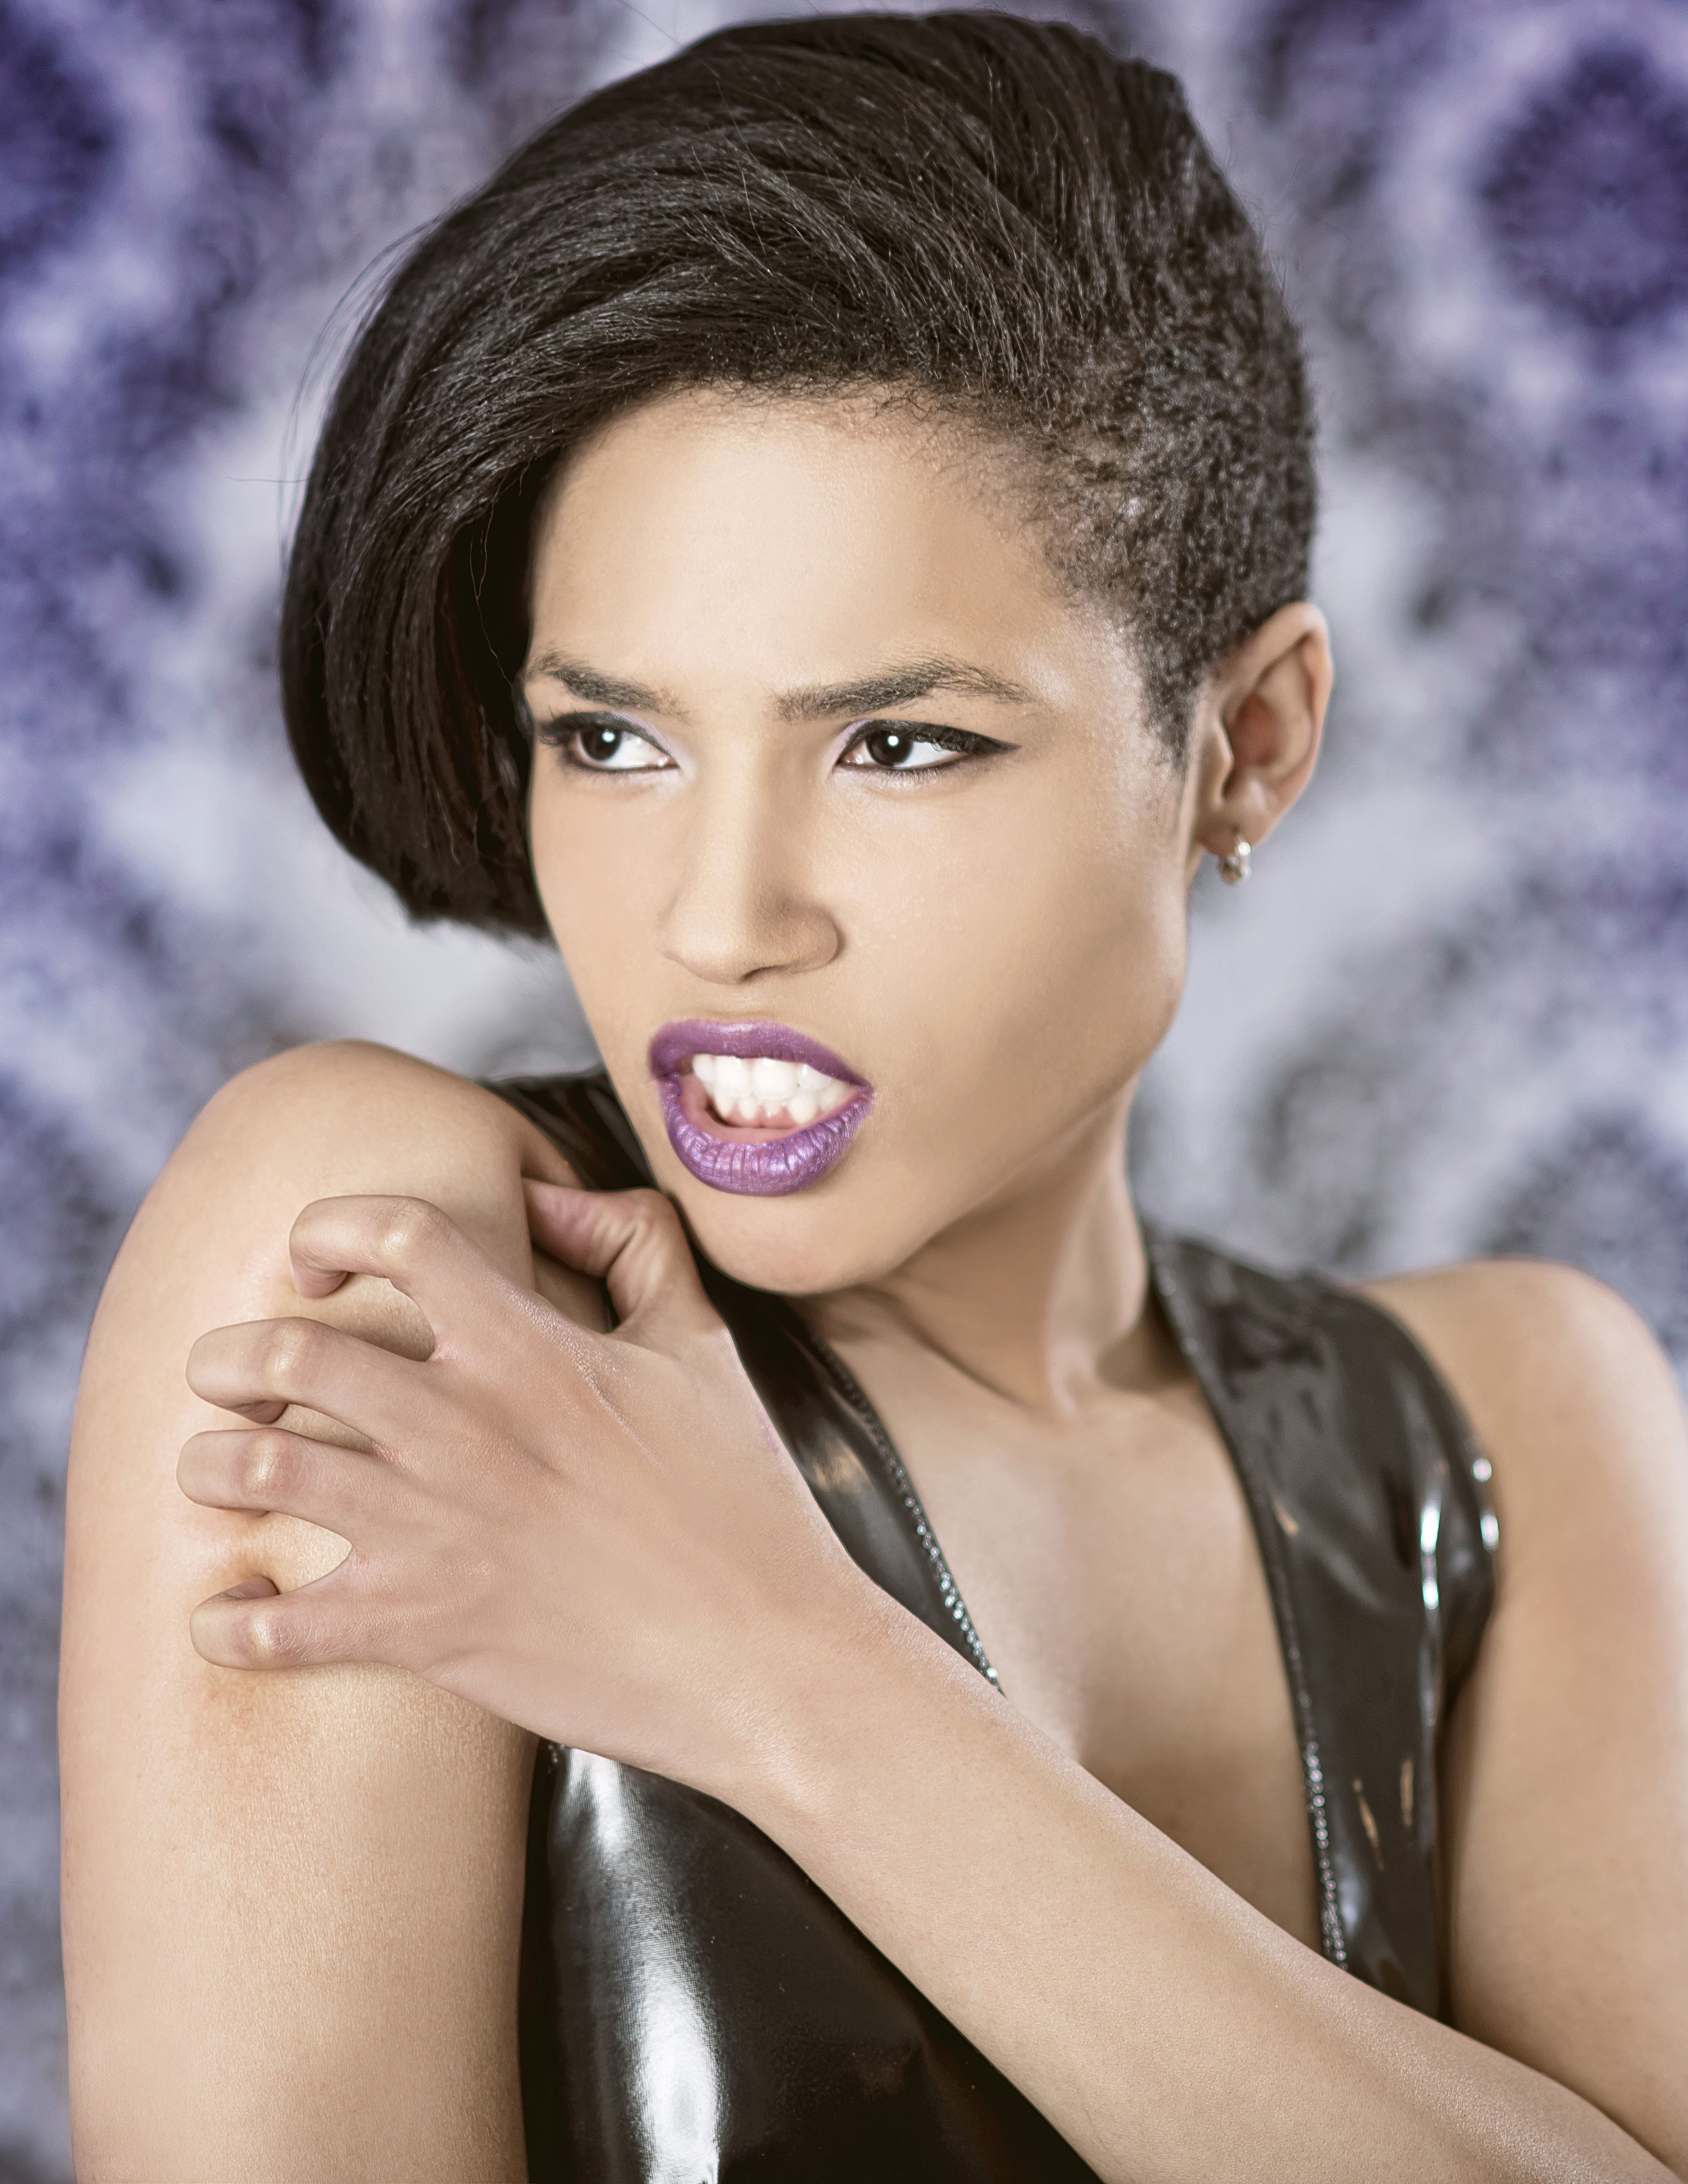 Model- Paige Med Eric LaCore photography  #altmodel #alternativemodel #nyc #shorthair #purple #makeup #gothmodel #altfashion #photography #nymodel #fashion #paigemed